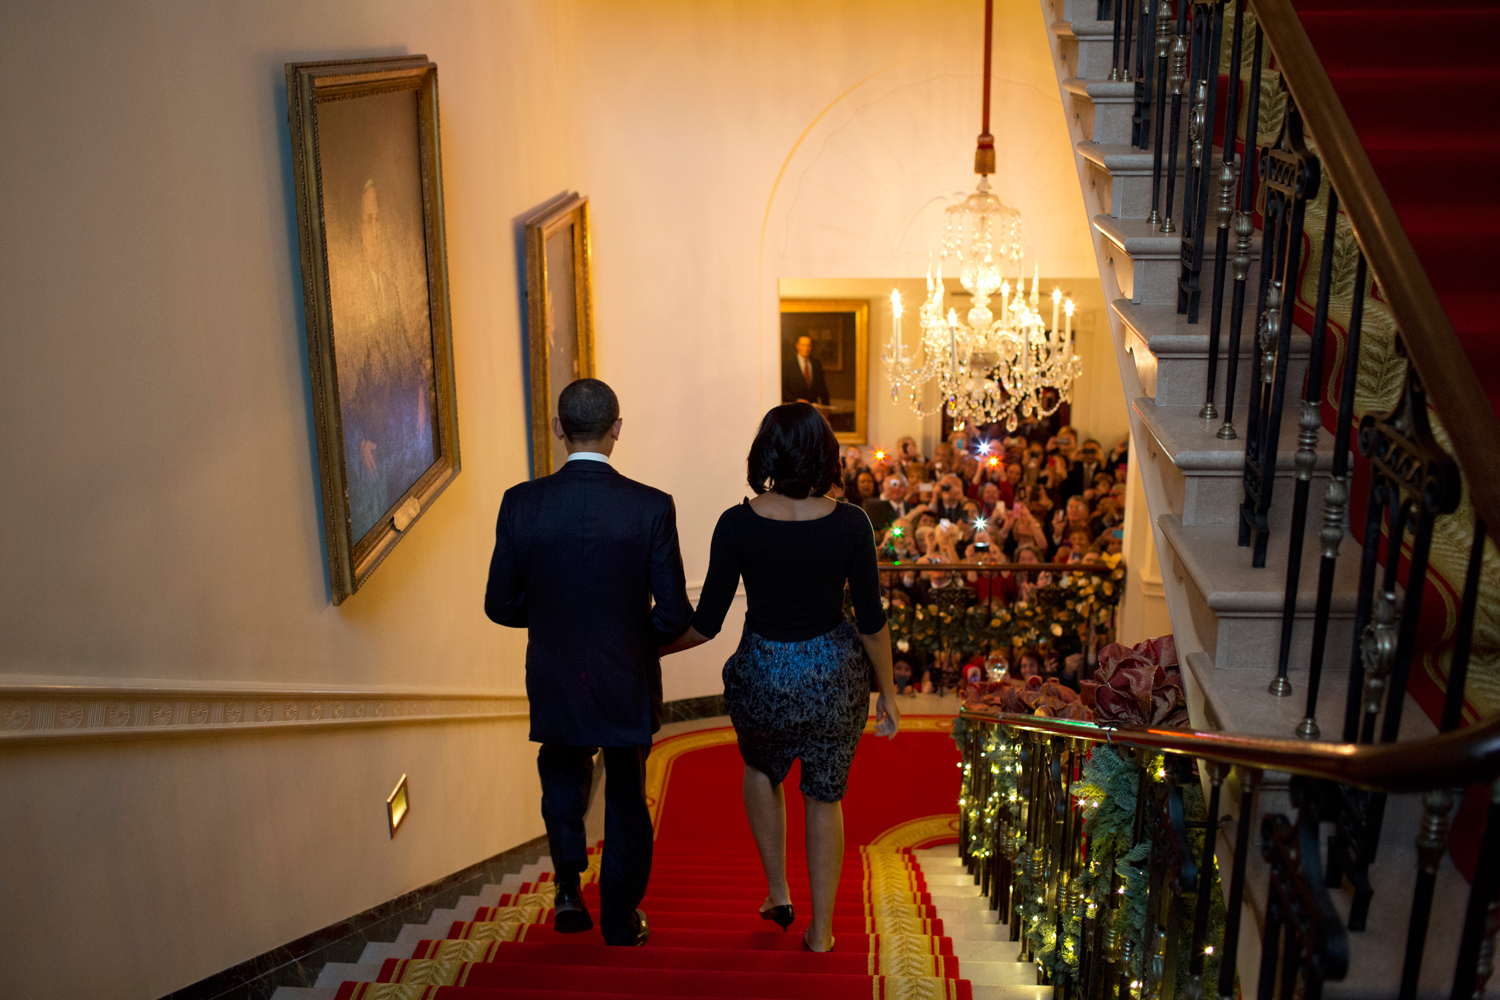 President Obama and First Lady Michelle Obama descend the White House staircase to a packed audience attending a Christmas party.